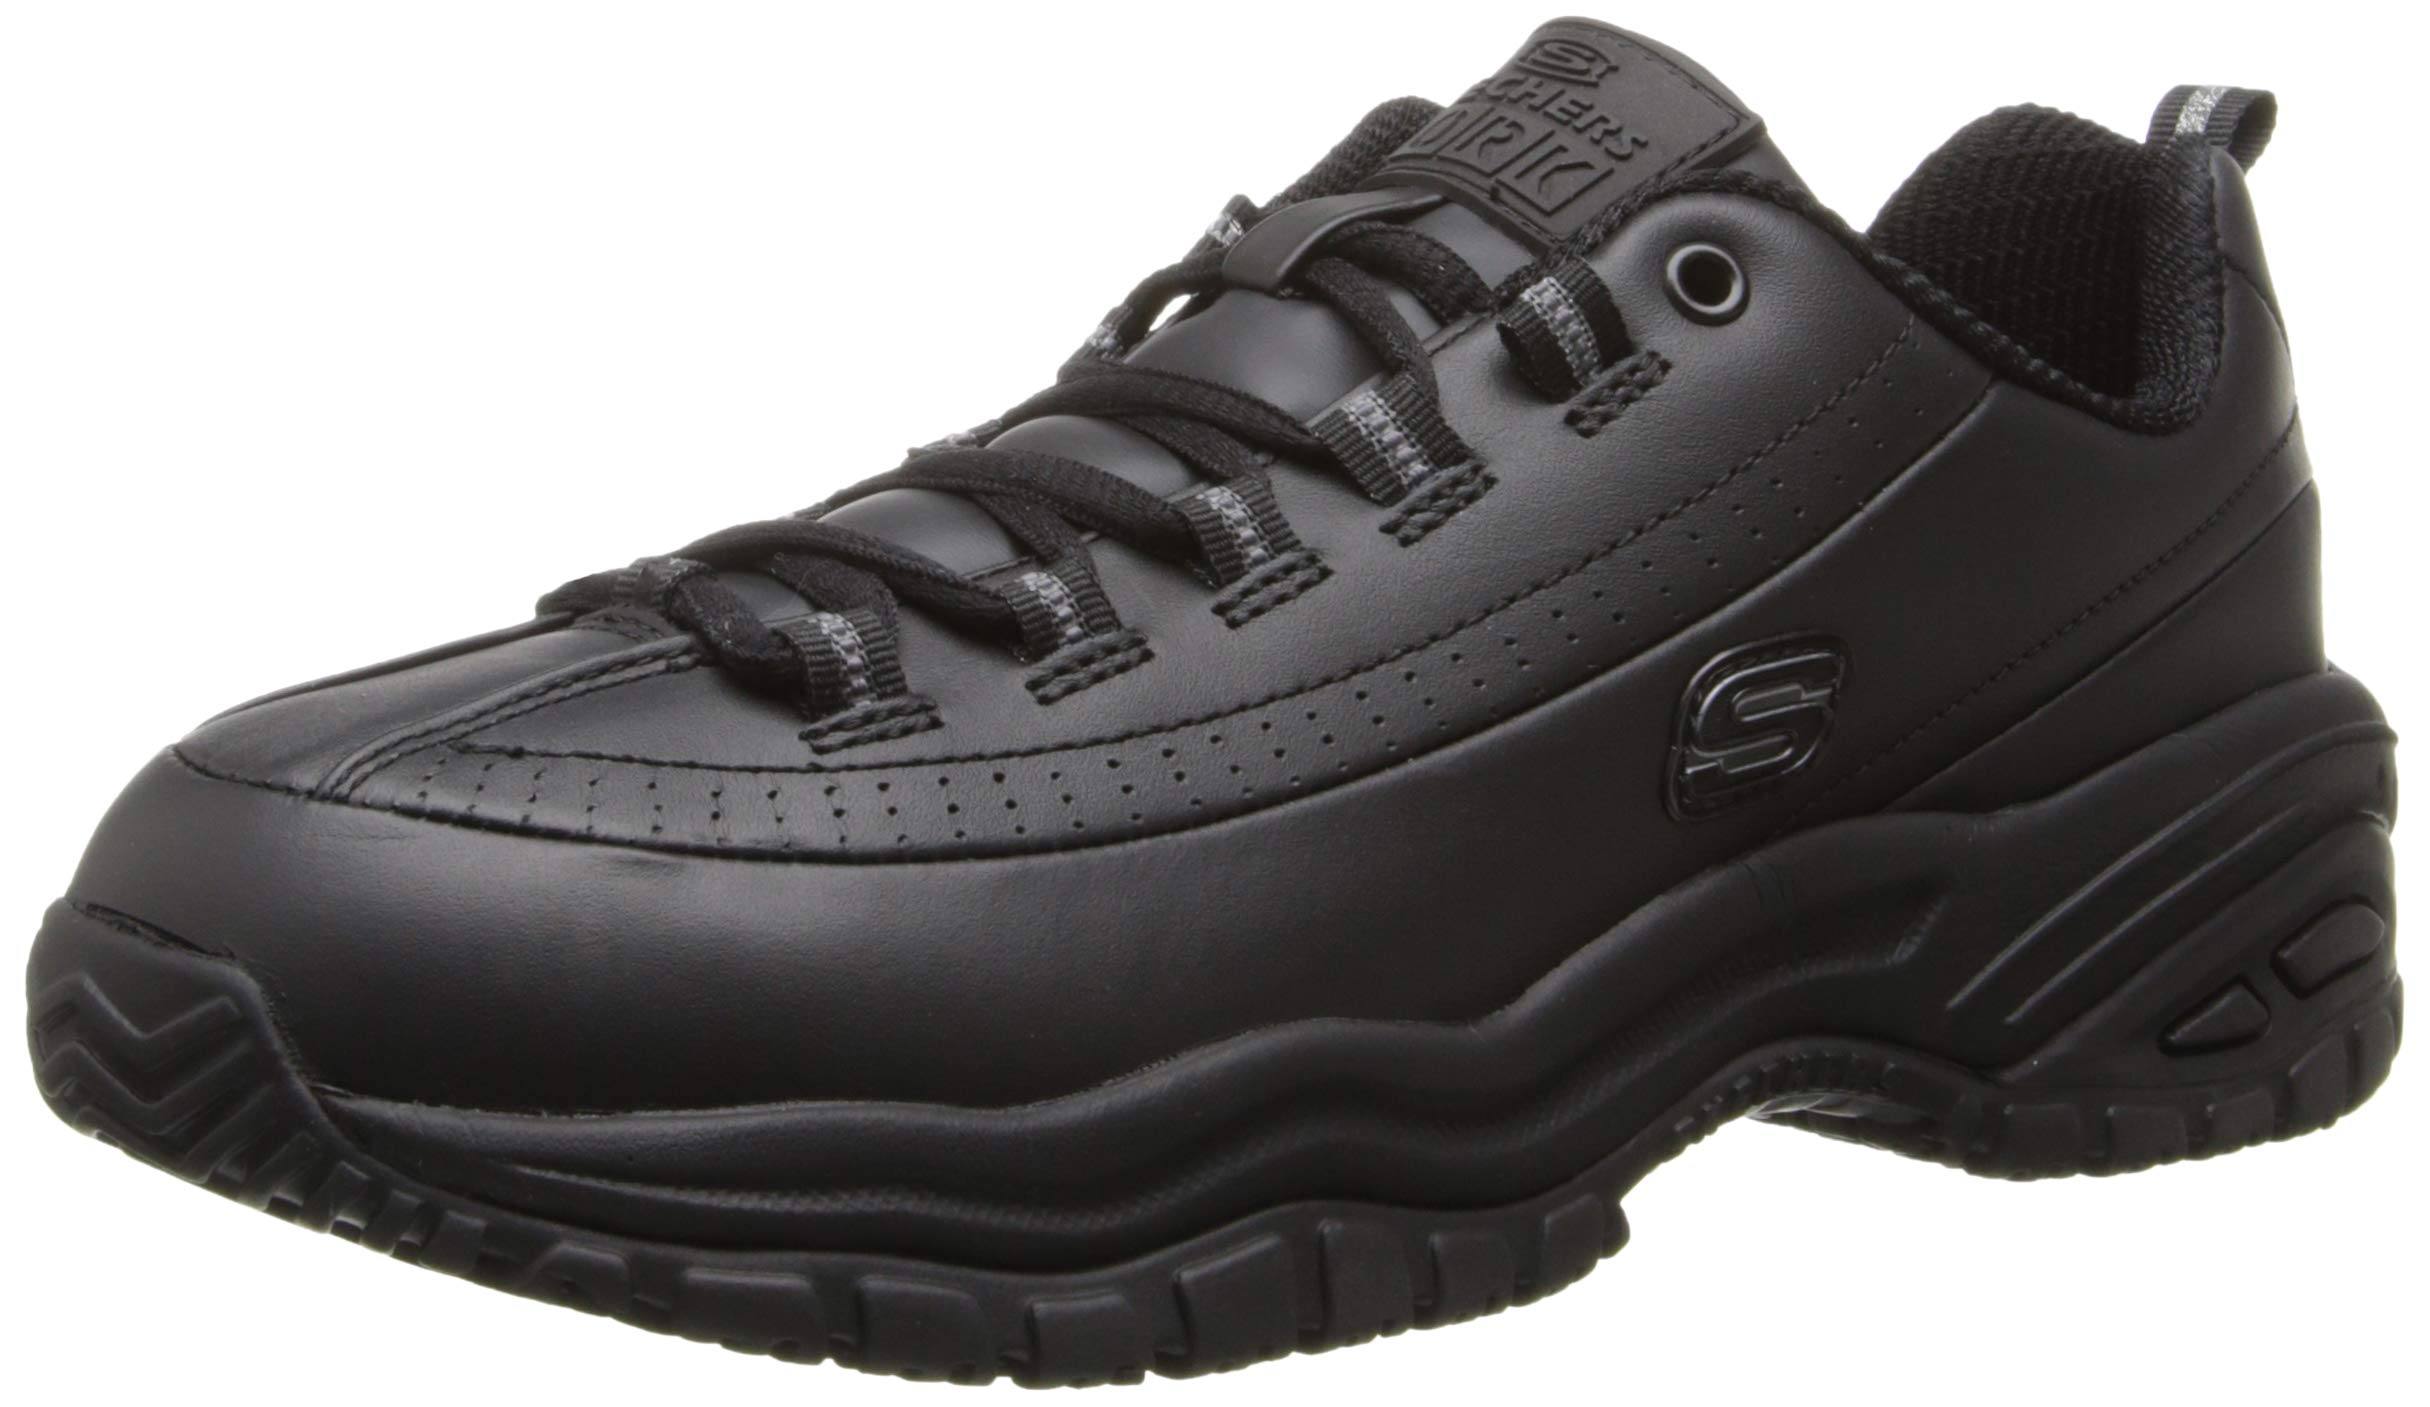 Skechers for Work Women's Soft Stride-Softie Lace-Up, Black, 8.5 D - Wide by Skechers